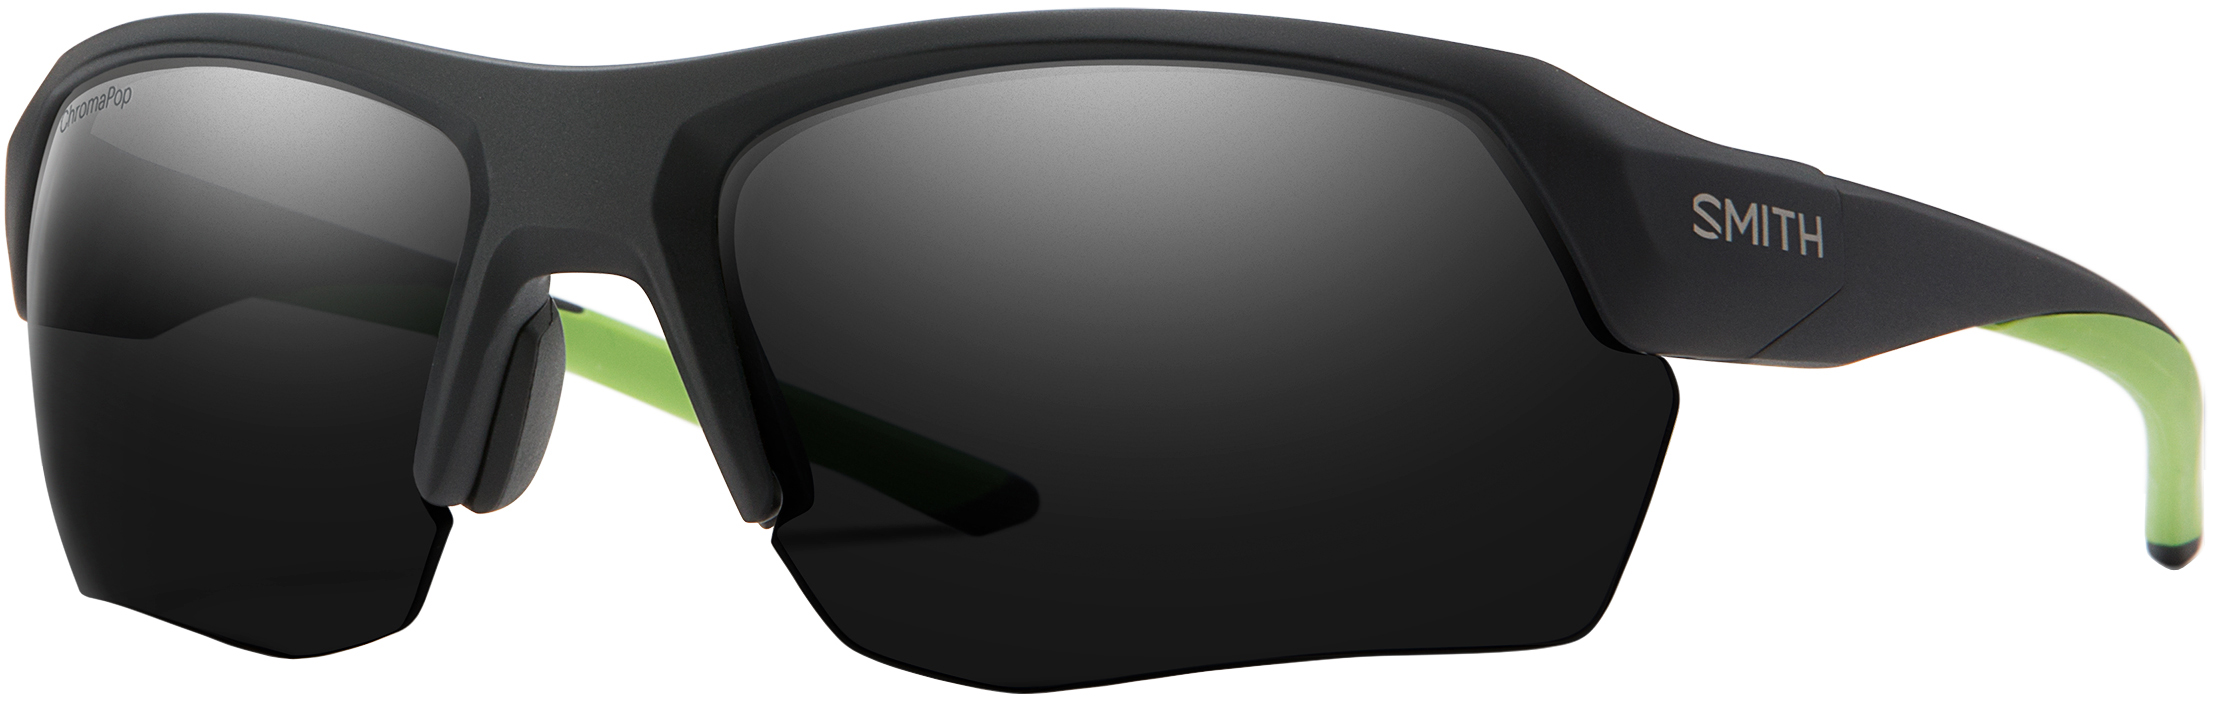 Smith Tempo Max Sunglasses | Glasses